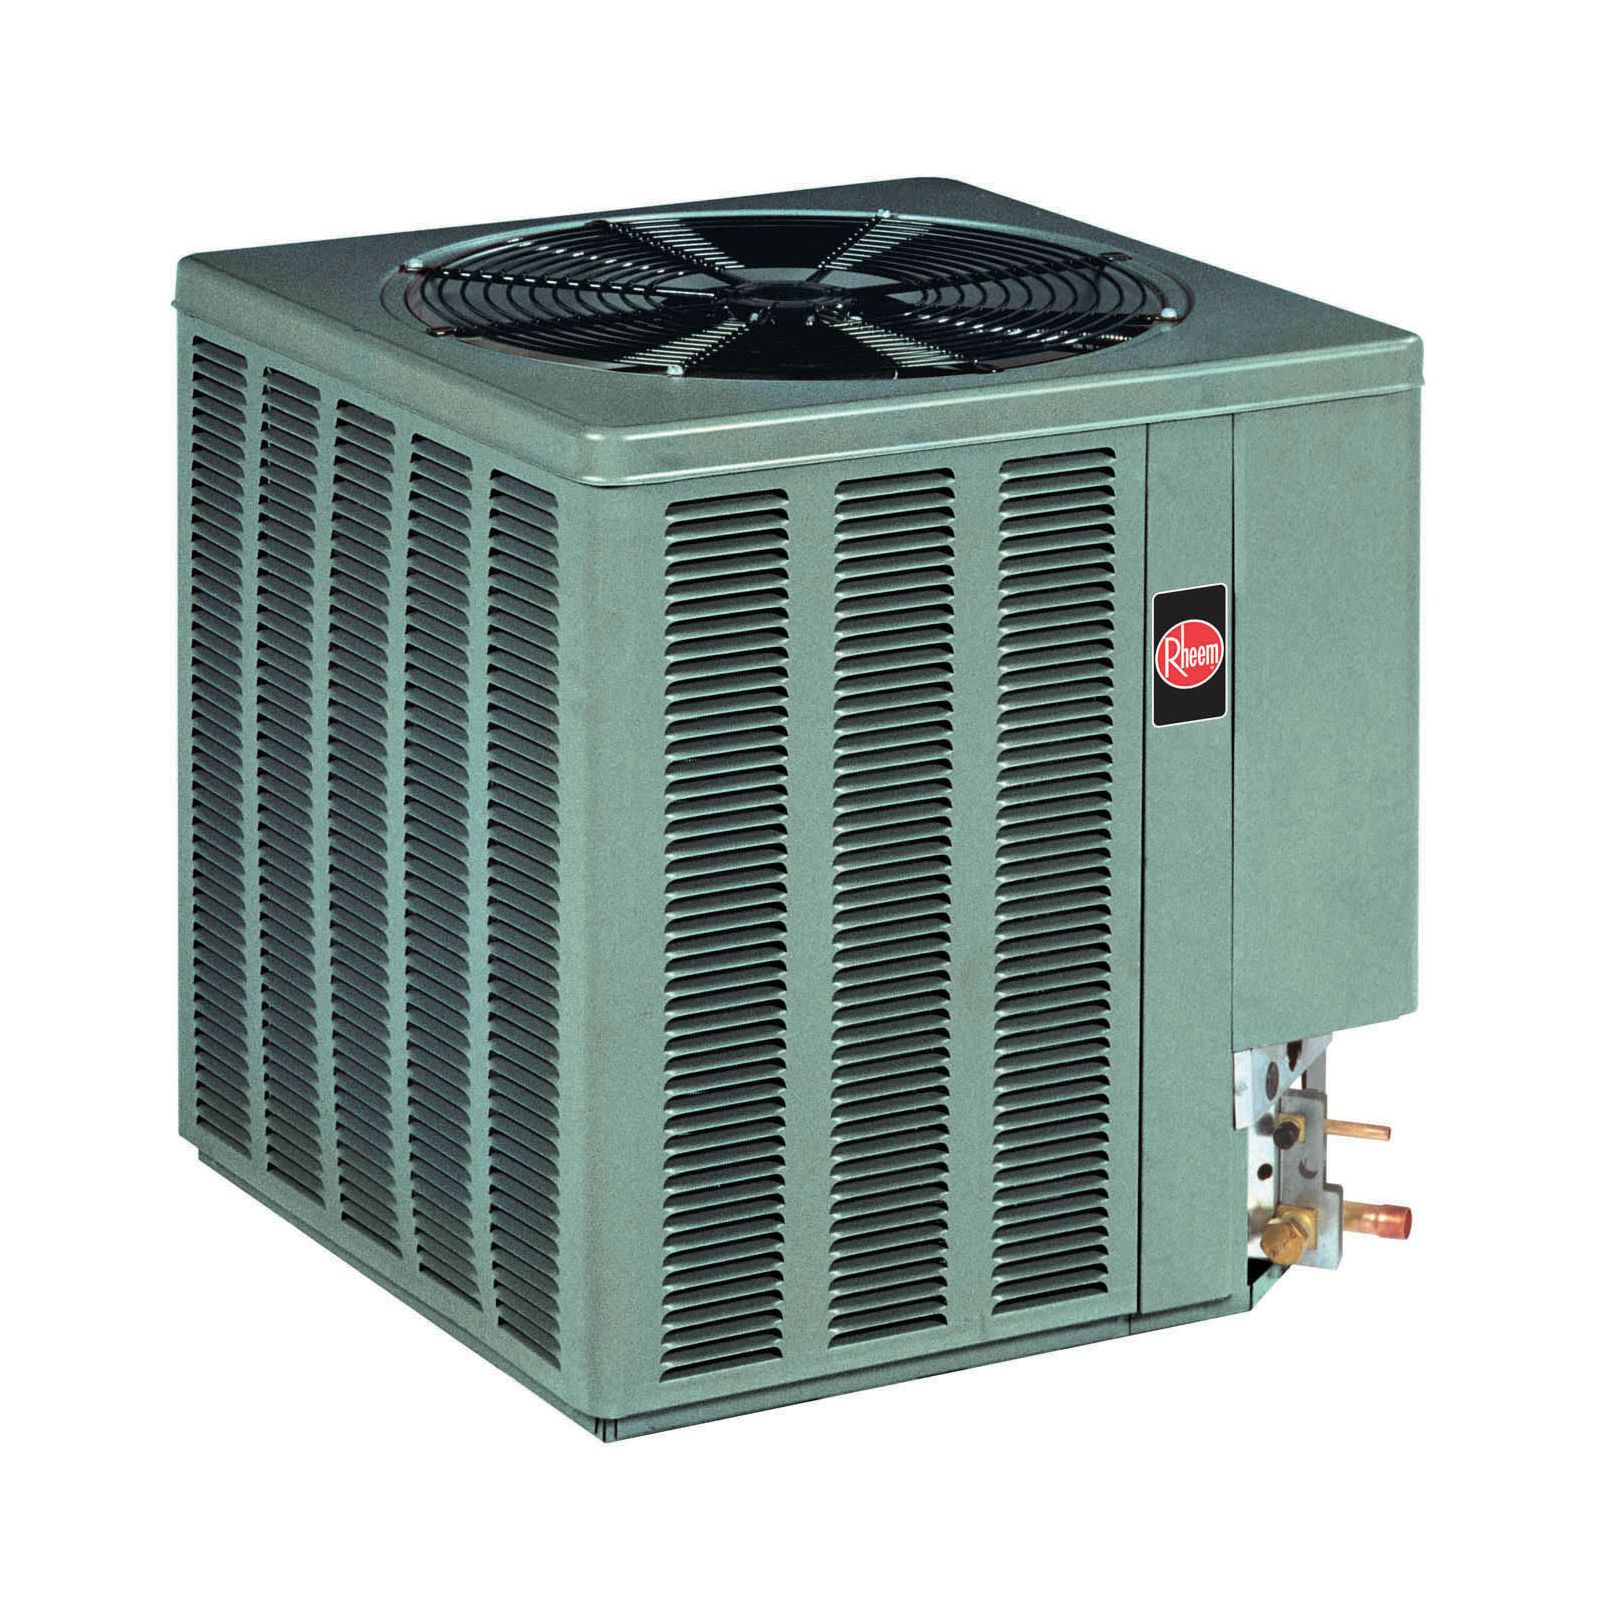 Rheem 15PJL60A01 - Value Series 5 Ton, 15 SEER, R410A Heat Pump